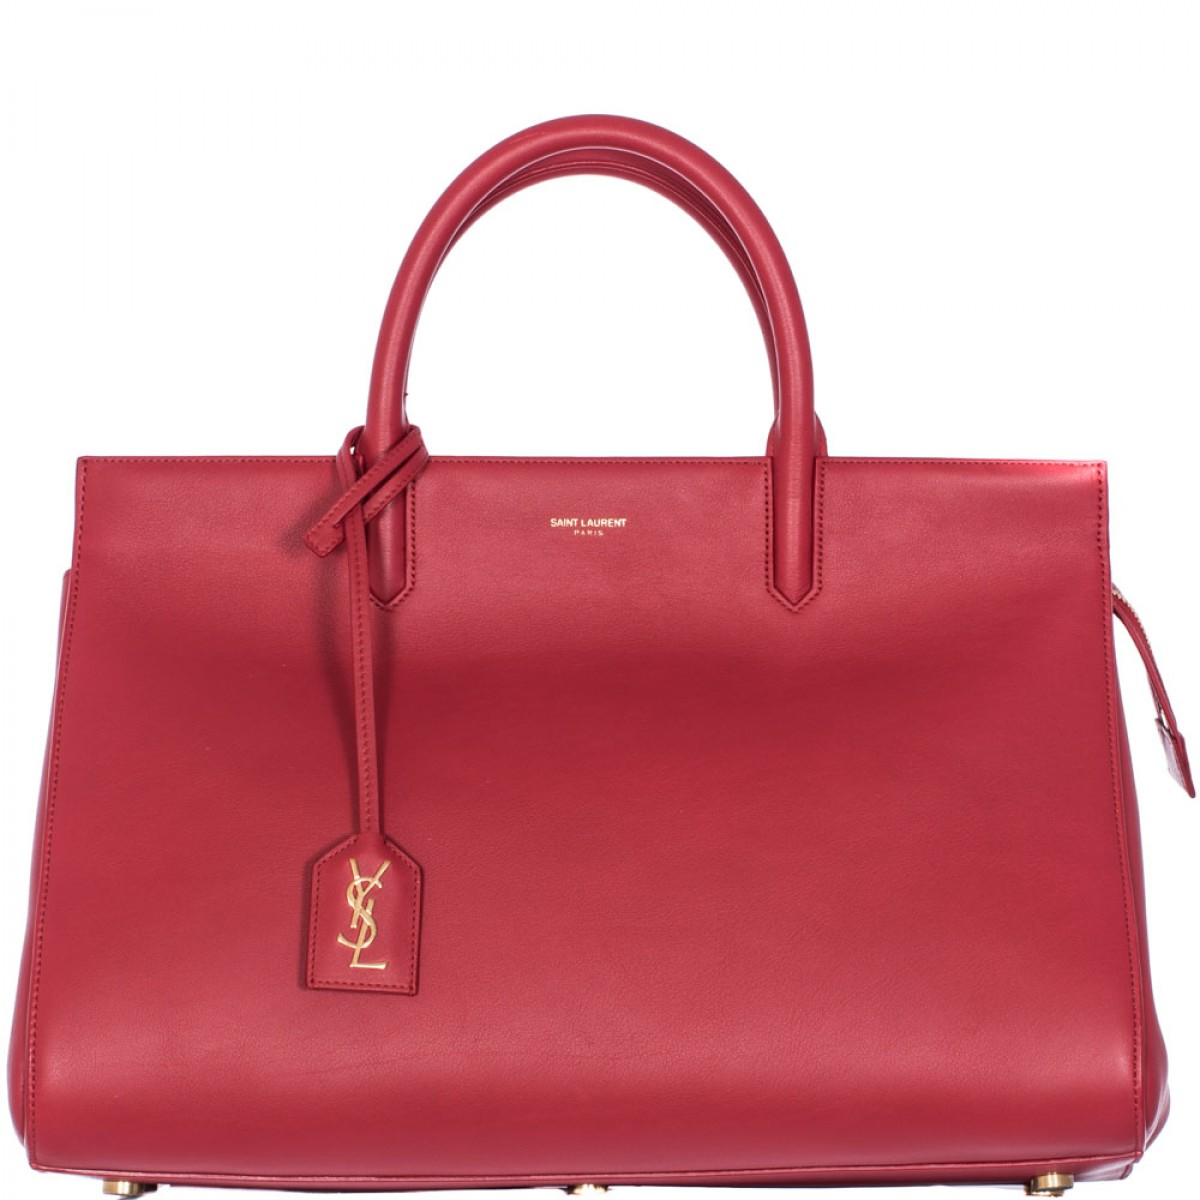 Saint Laurent Red Leather Cabas Rive Gauche Medium Bag In